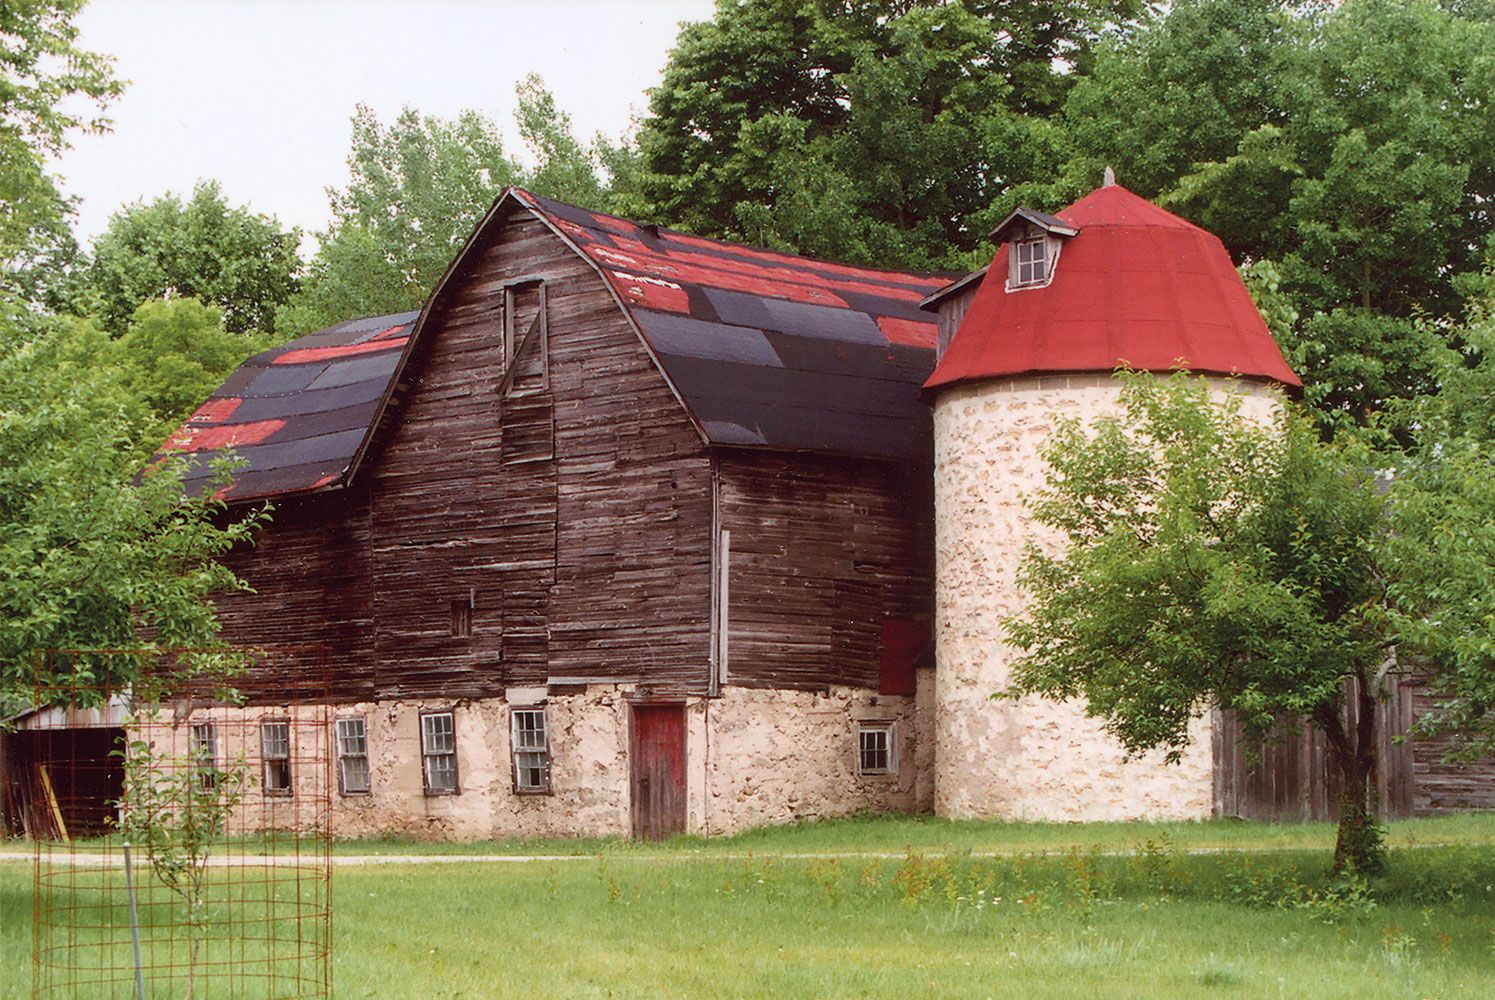 Gorgeous Photos of Rural America's Historic Barns